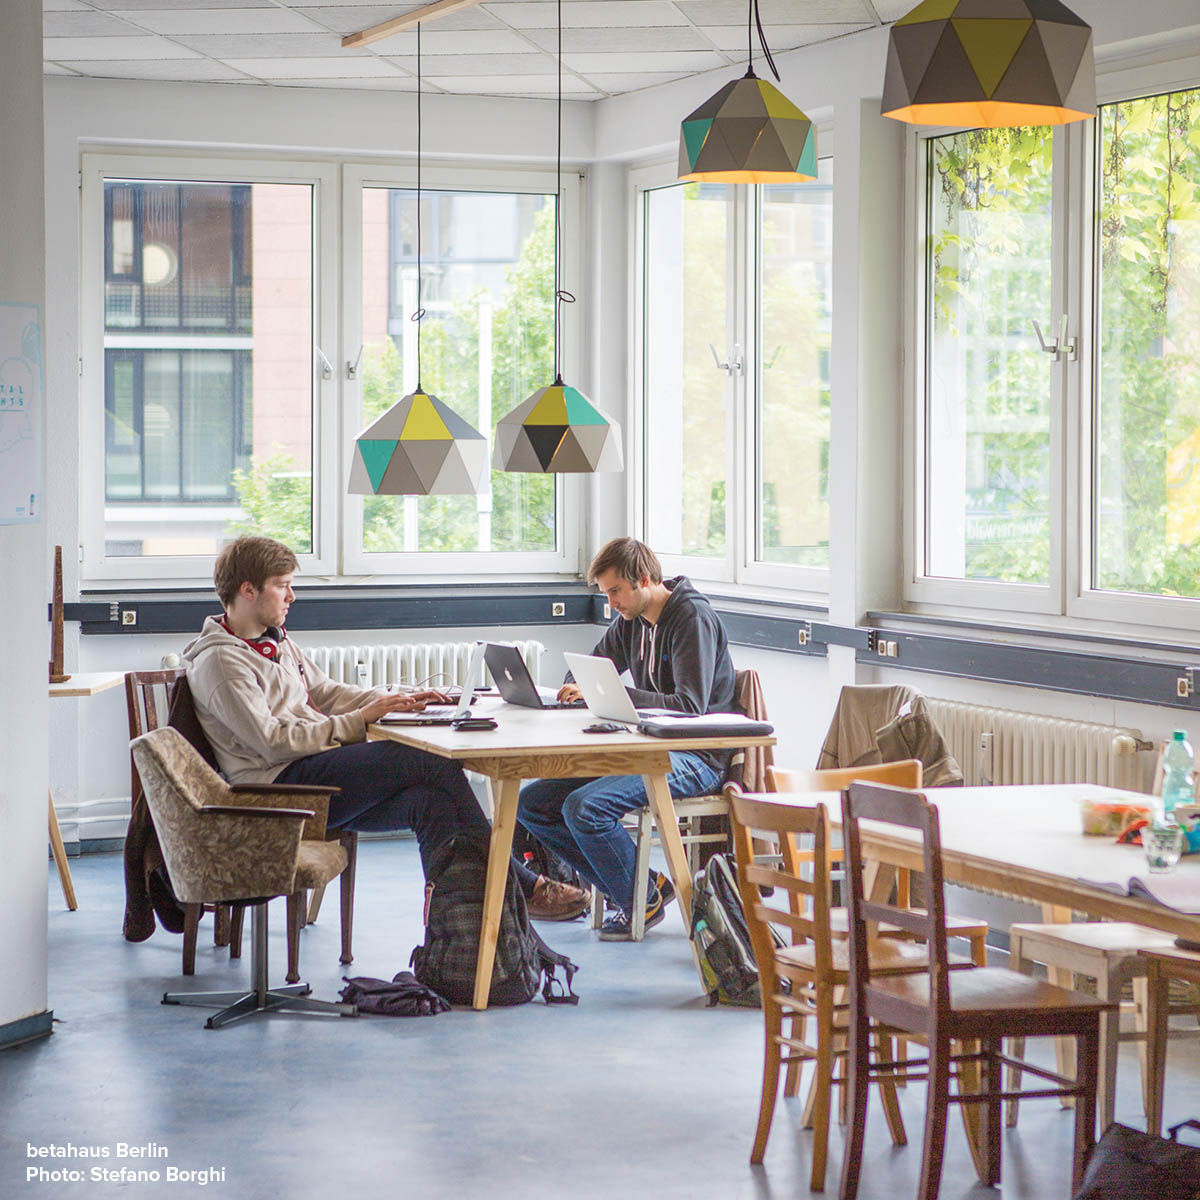 Discover Berlin's hottest co-working spots